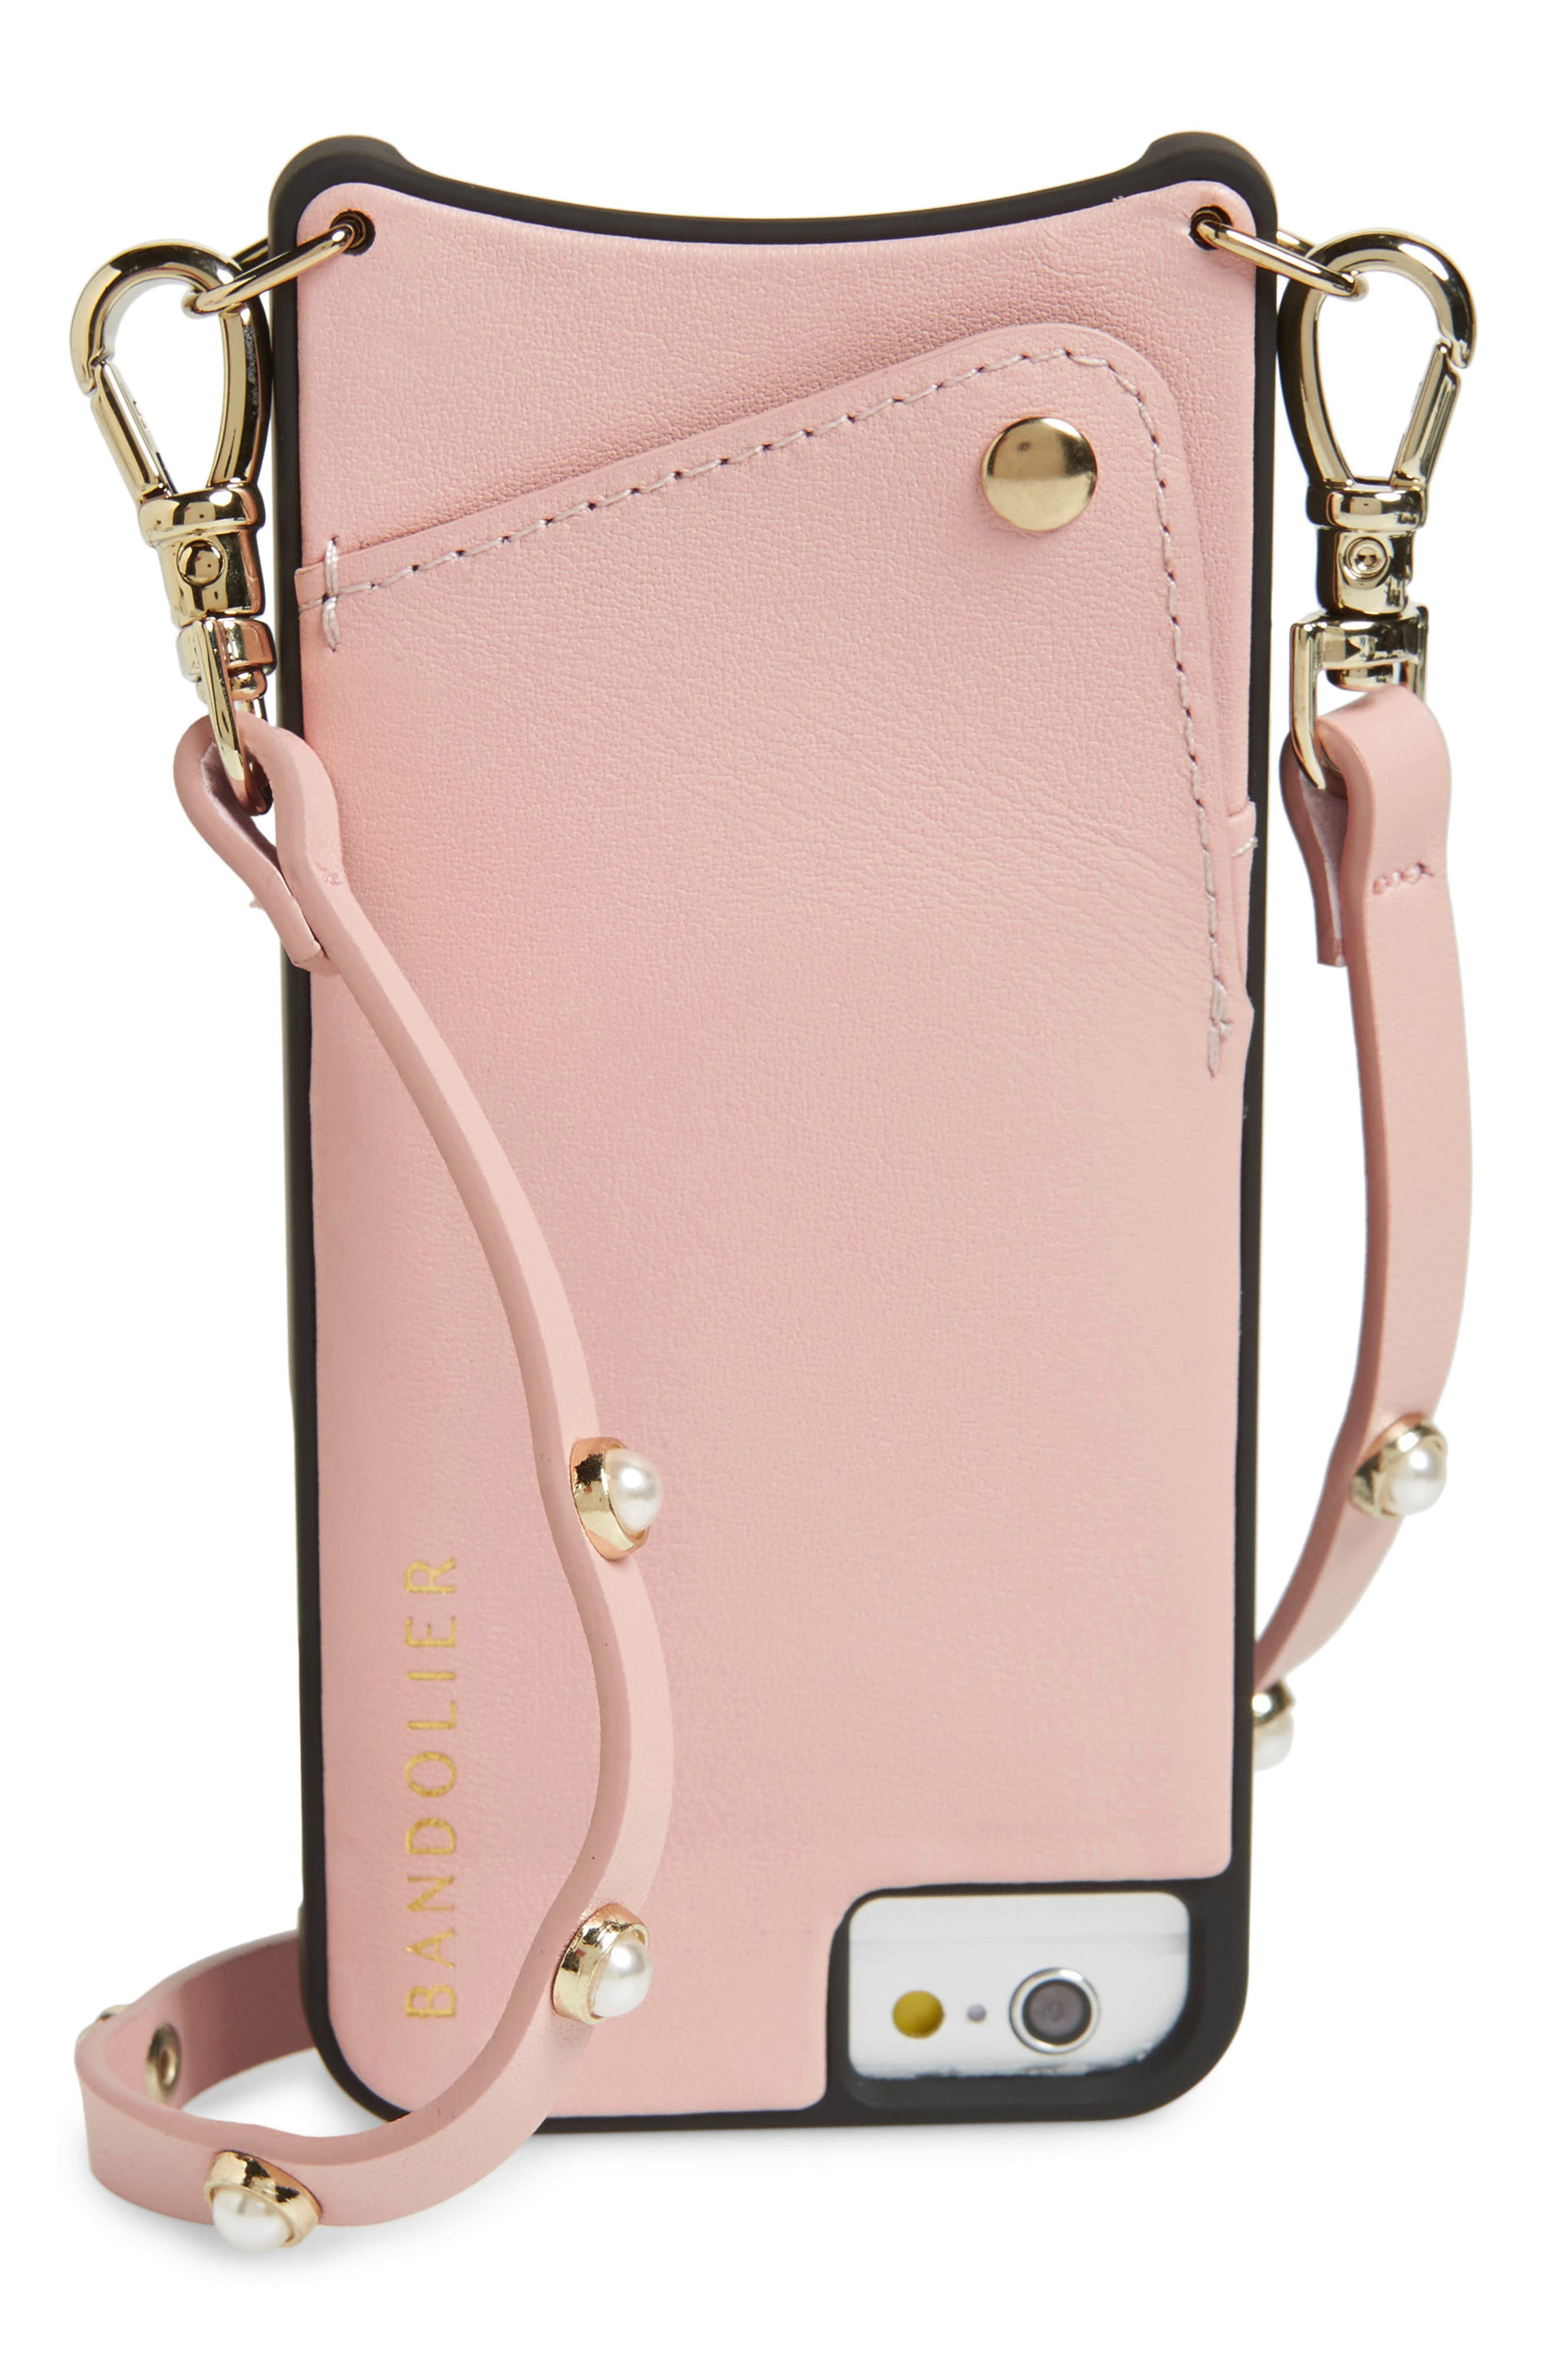 Claire Leather iPhone 7/8 & 7/8 Plus Crossbody Case,                             Main thumbnail 1, color,                             Pink/ Pearl